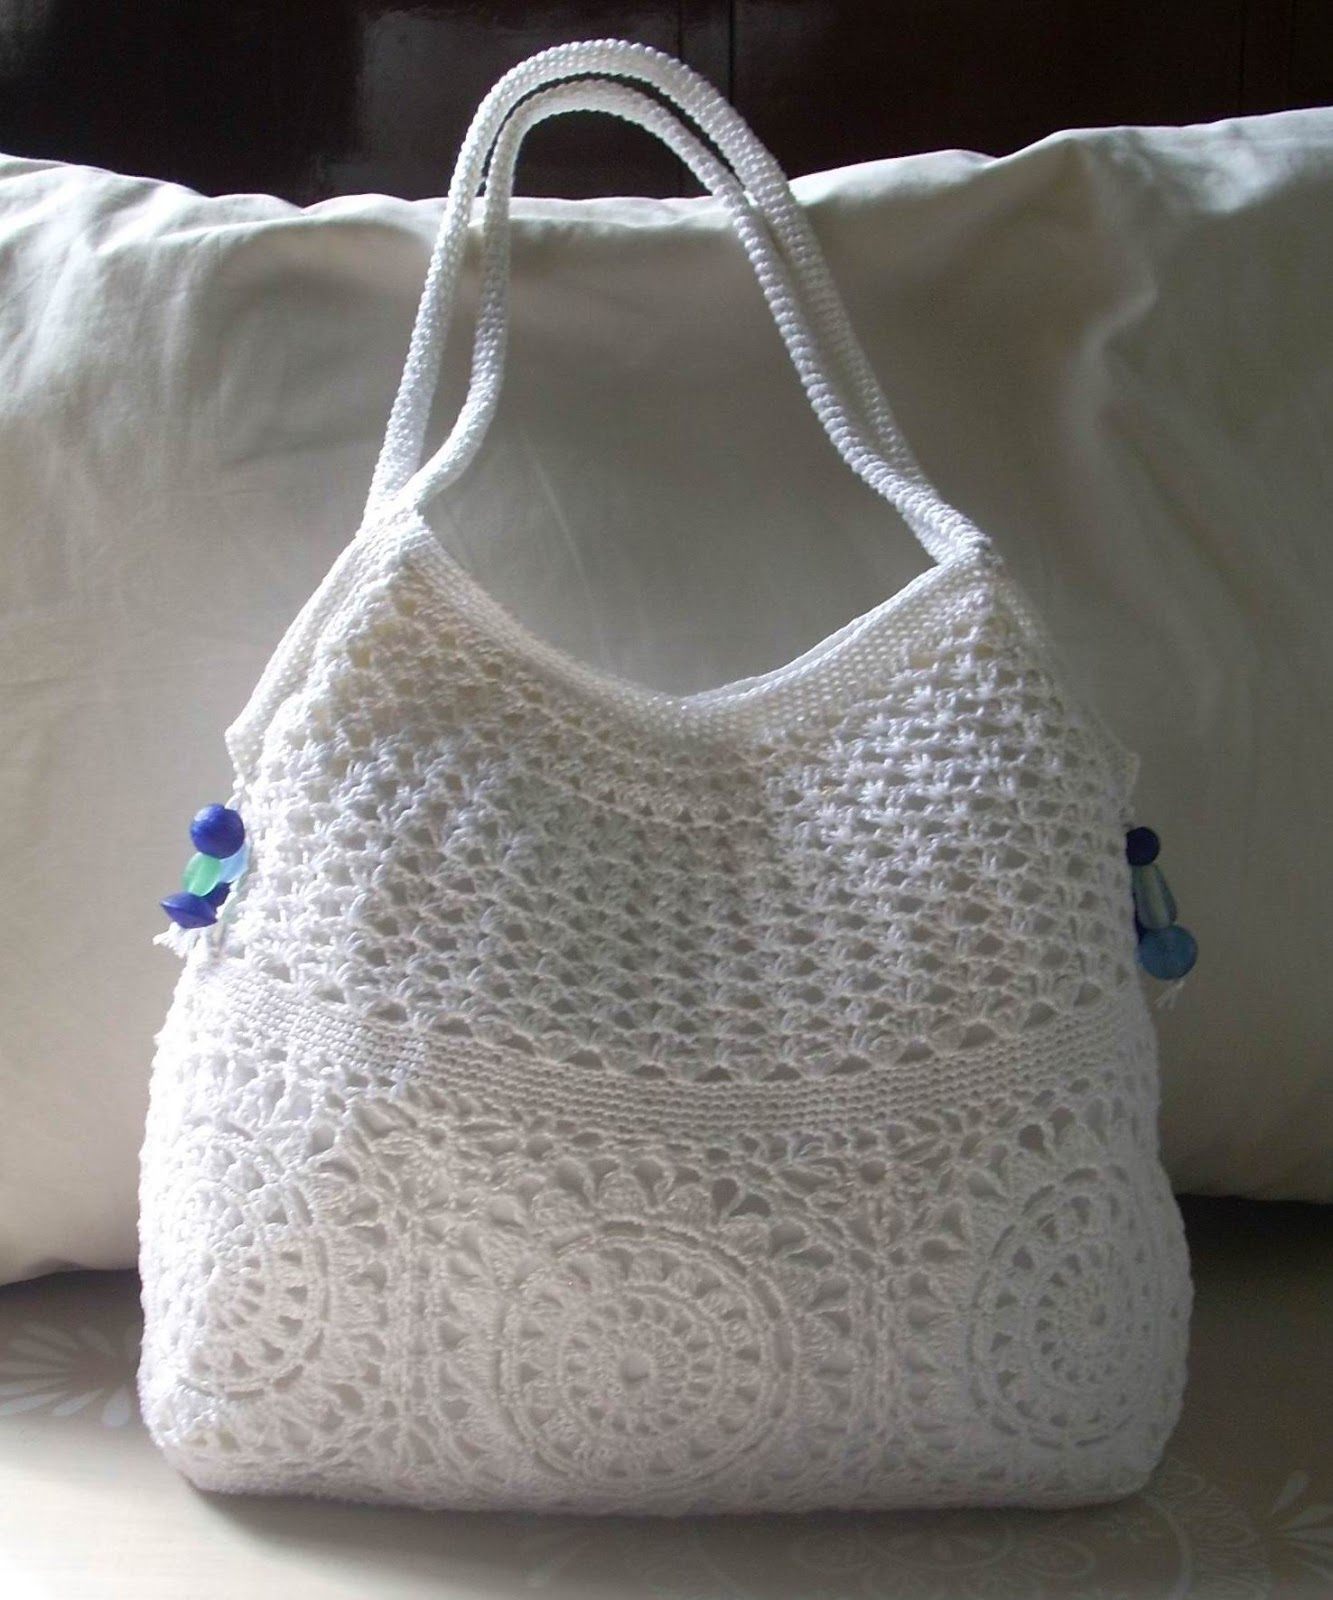 How To Crochet A Bag : used white cotton thread size 8, held doubled, on an unknown hook ...